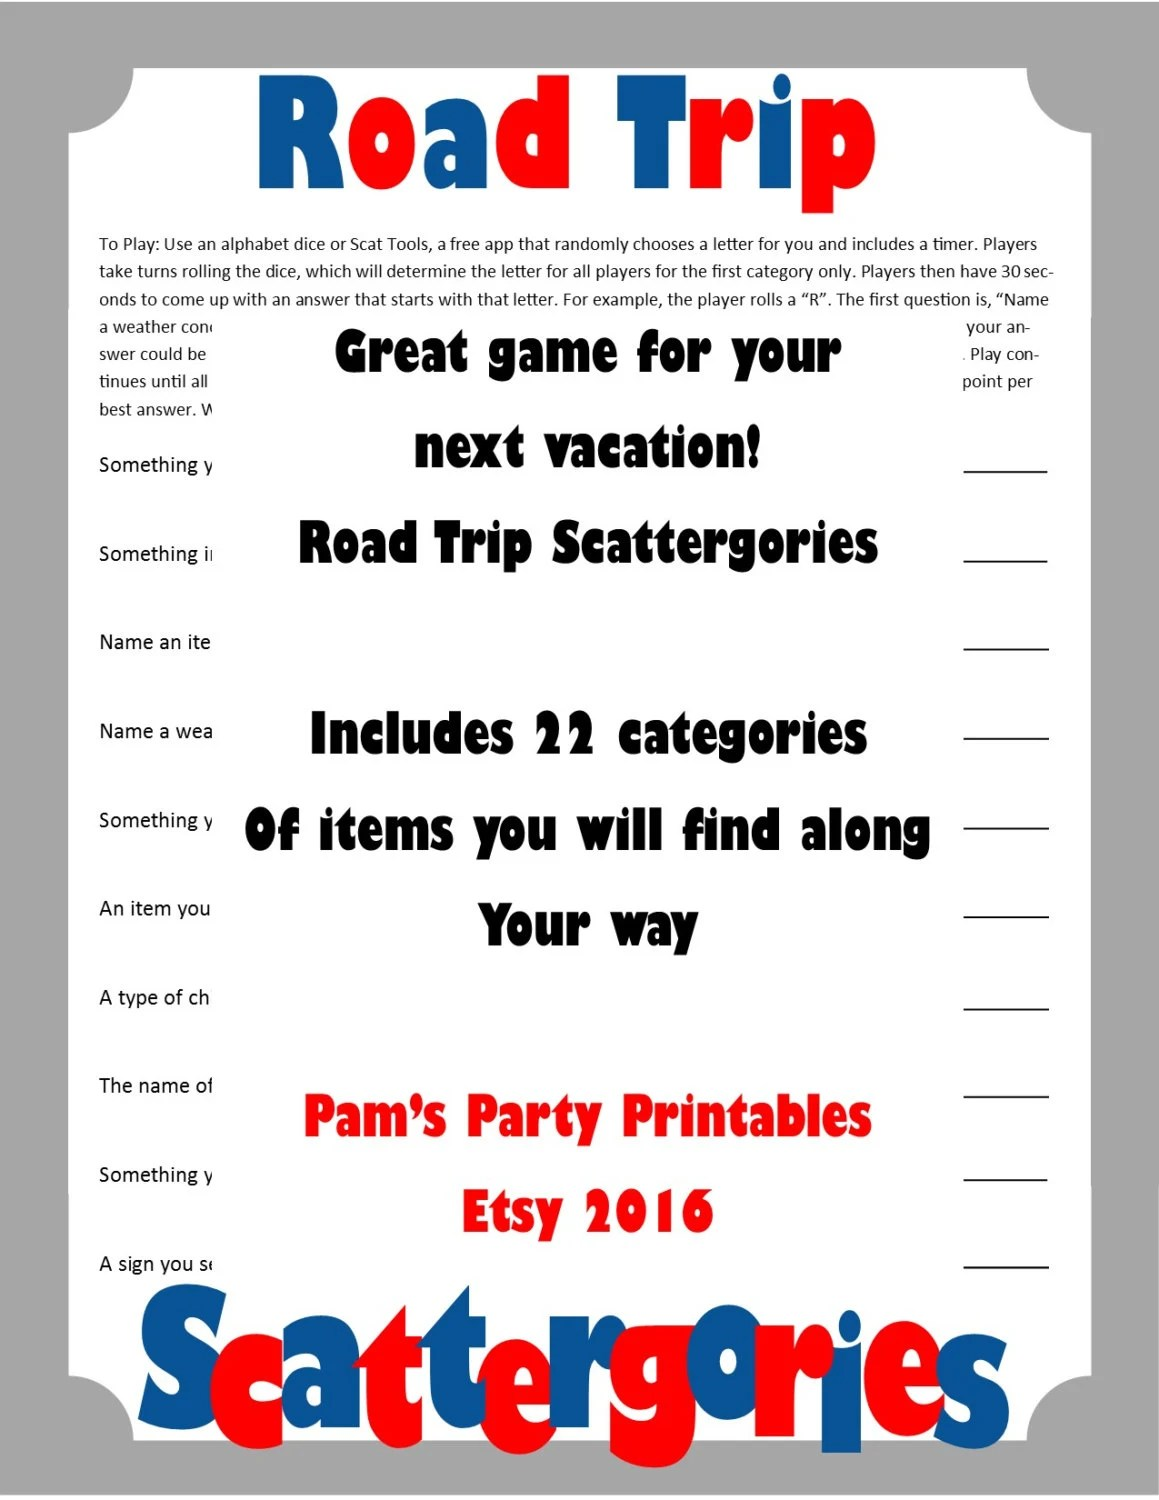 Printable Travel/Road Trip Game Cards for Pictionary or